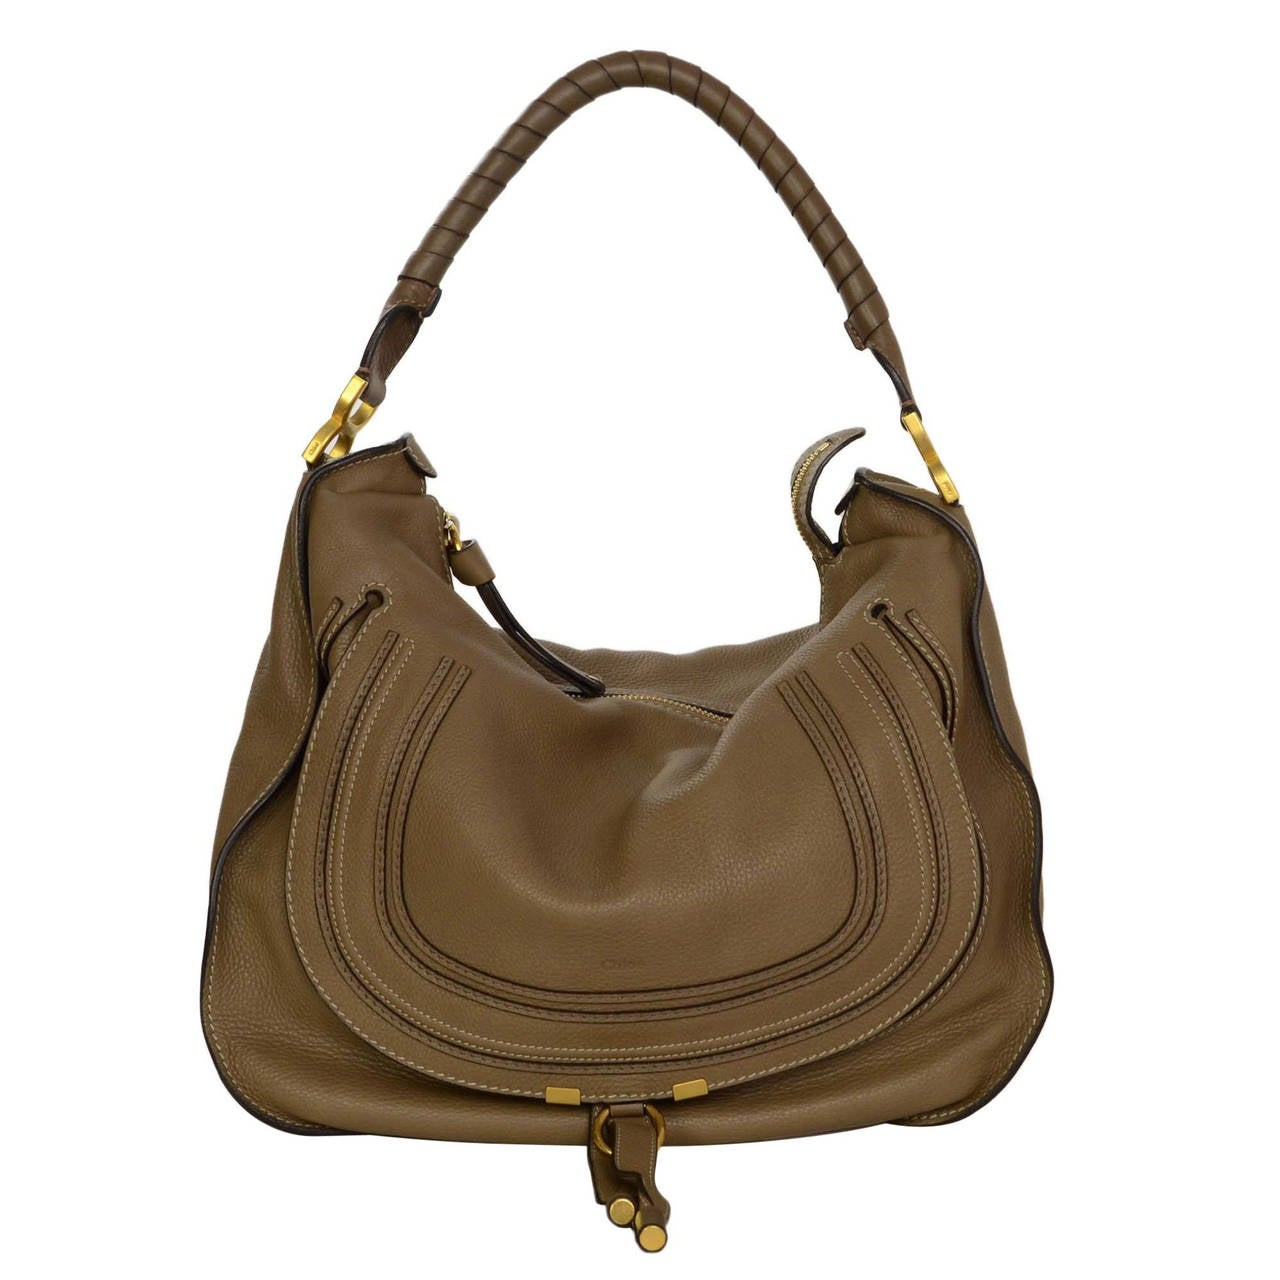 Hobo bags are hot this season! The Michael Kors Large Handbag Cream Leather Hobo Bag is a top 10 member favorite on Tradesy. Get yours before they're sold out!